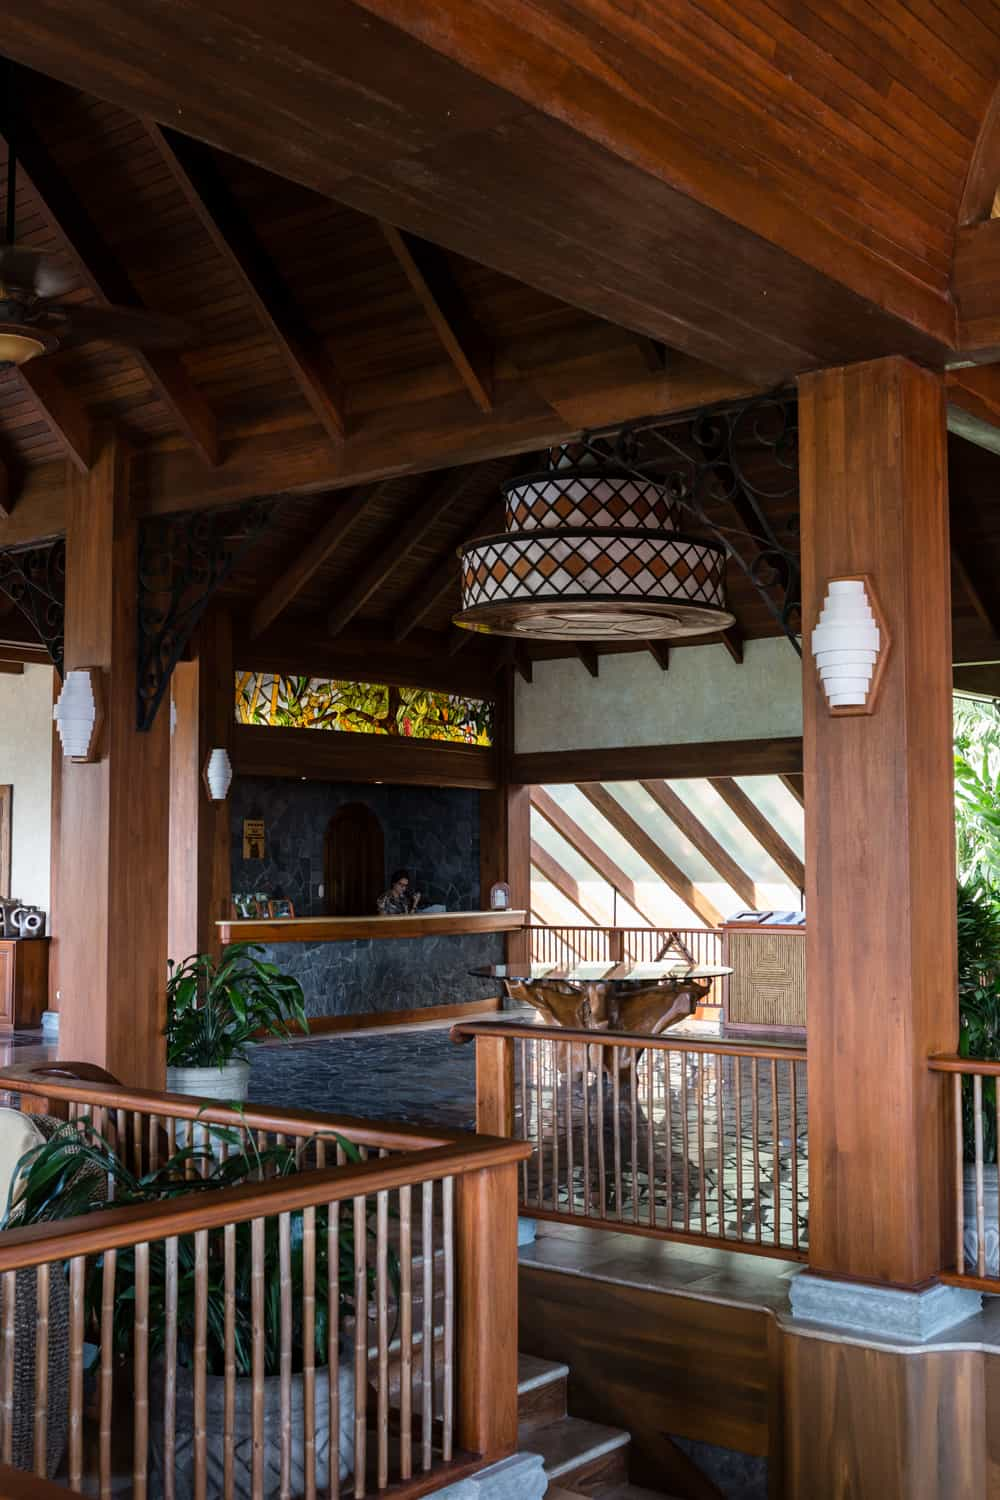 Reception area at the Springs Resort in Arenal.